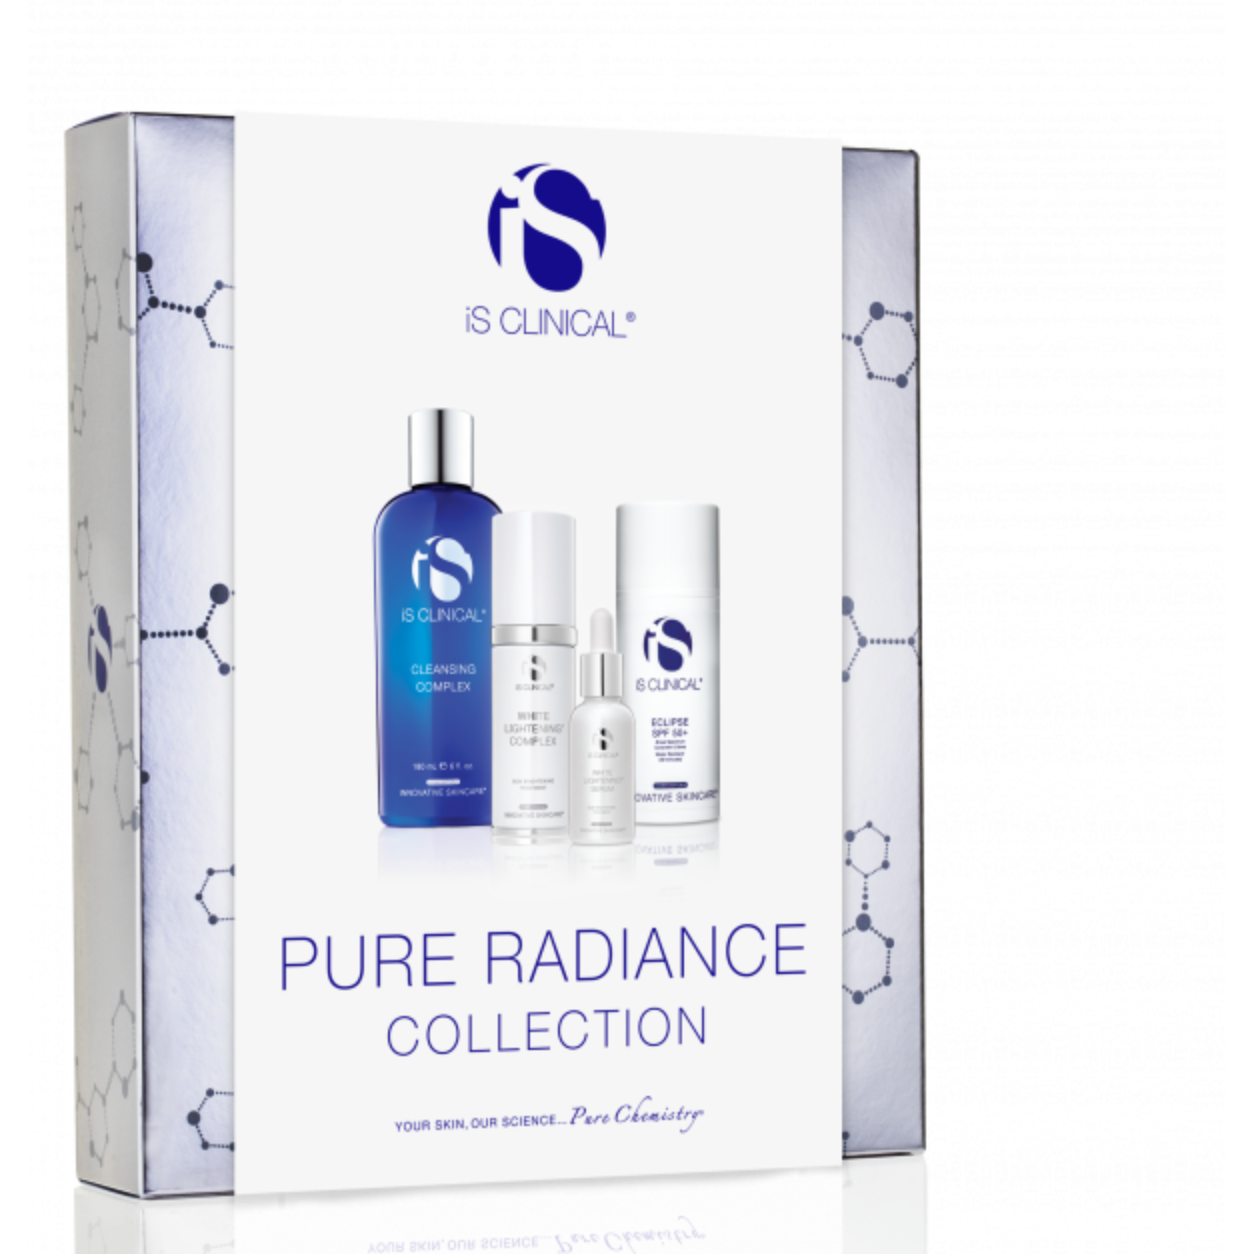 IS Clinical | Pure Radience Collection